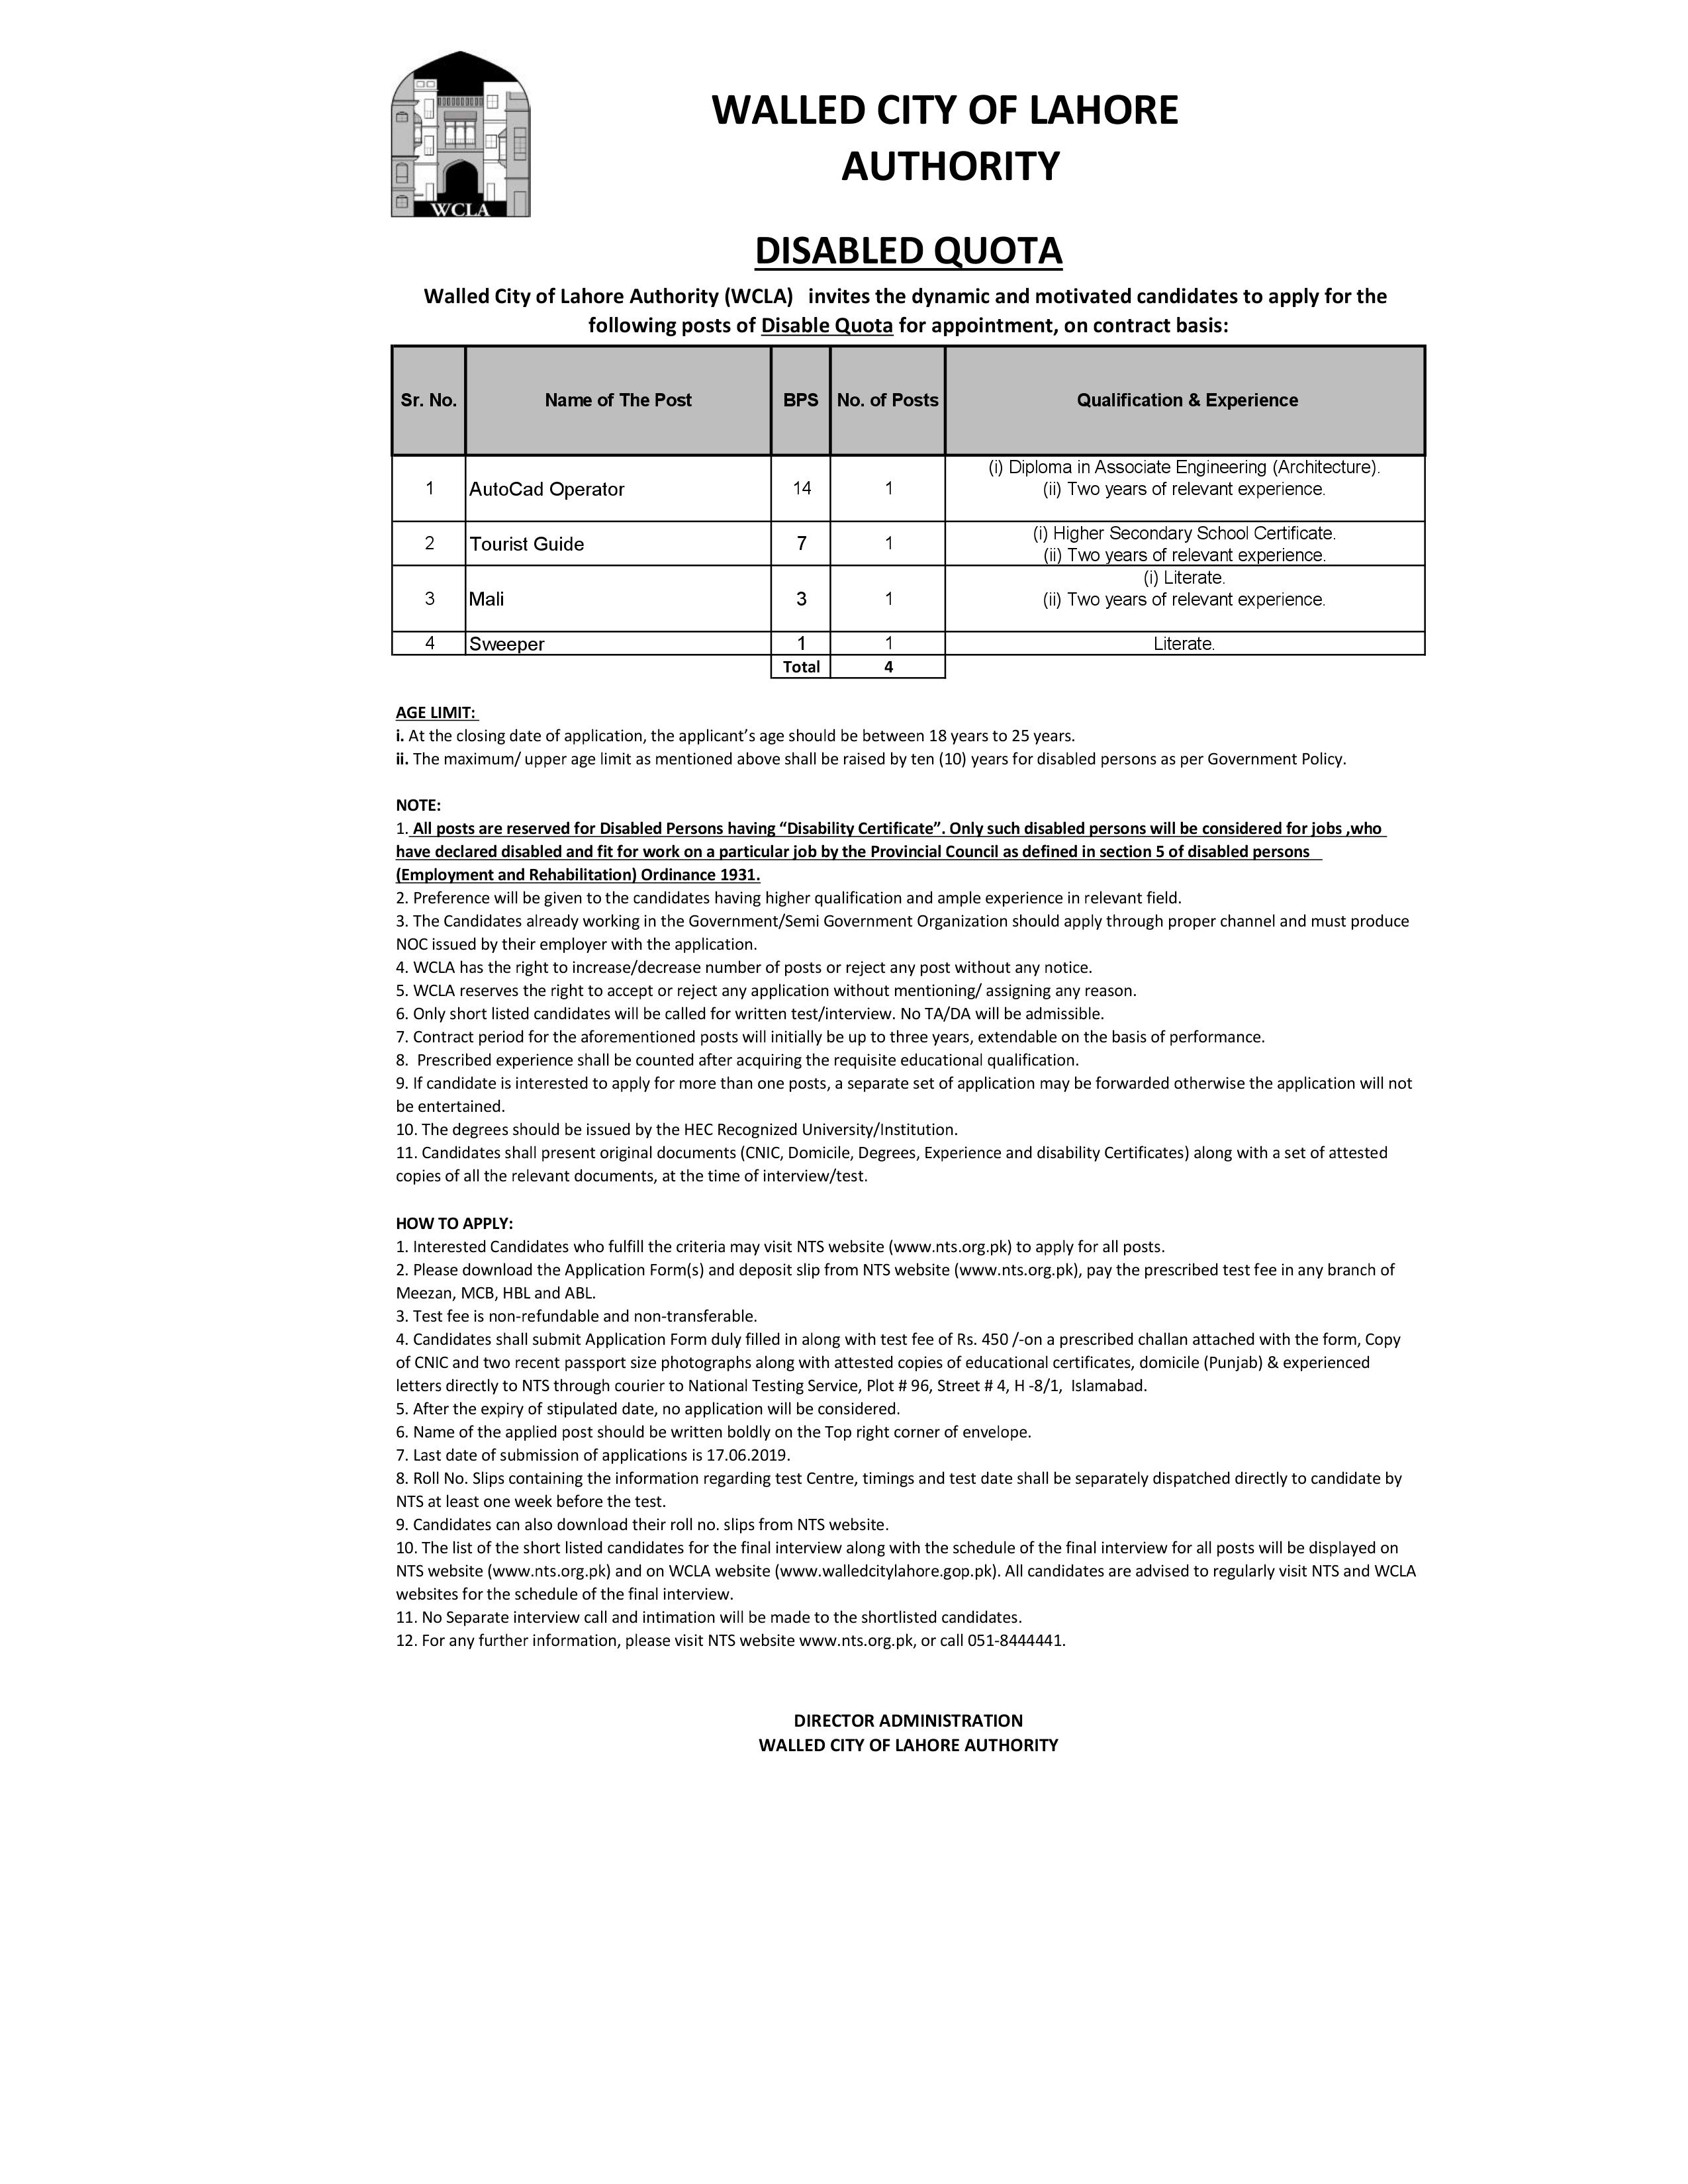 Walled City of Lahore Authority WLCA Jobs NTS Test Roll No Slip